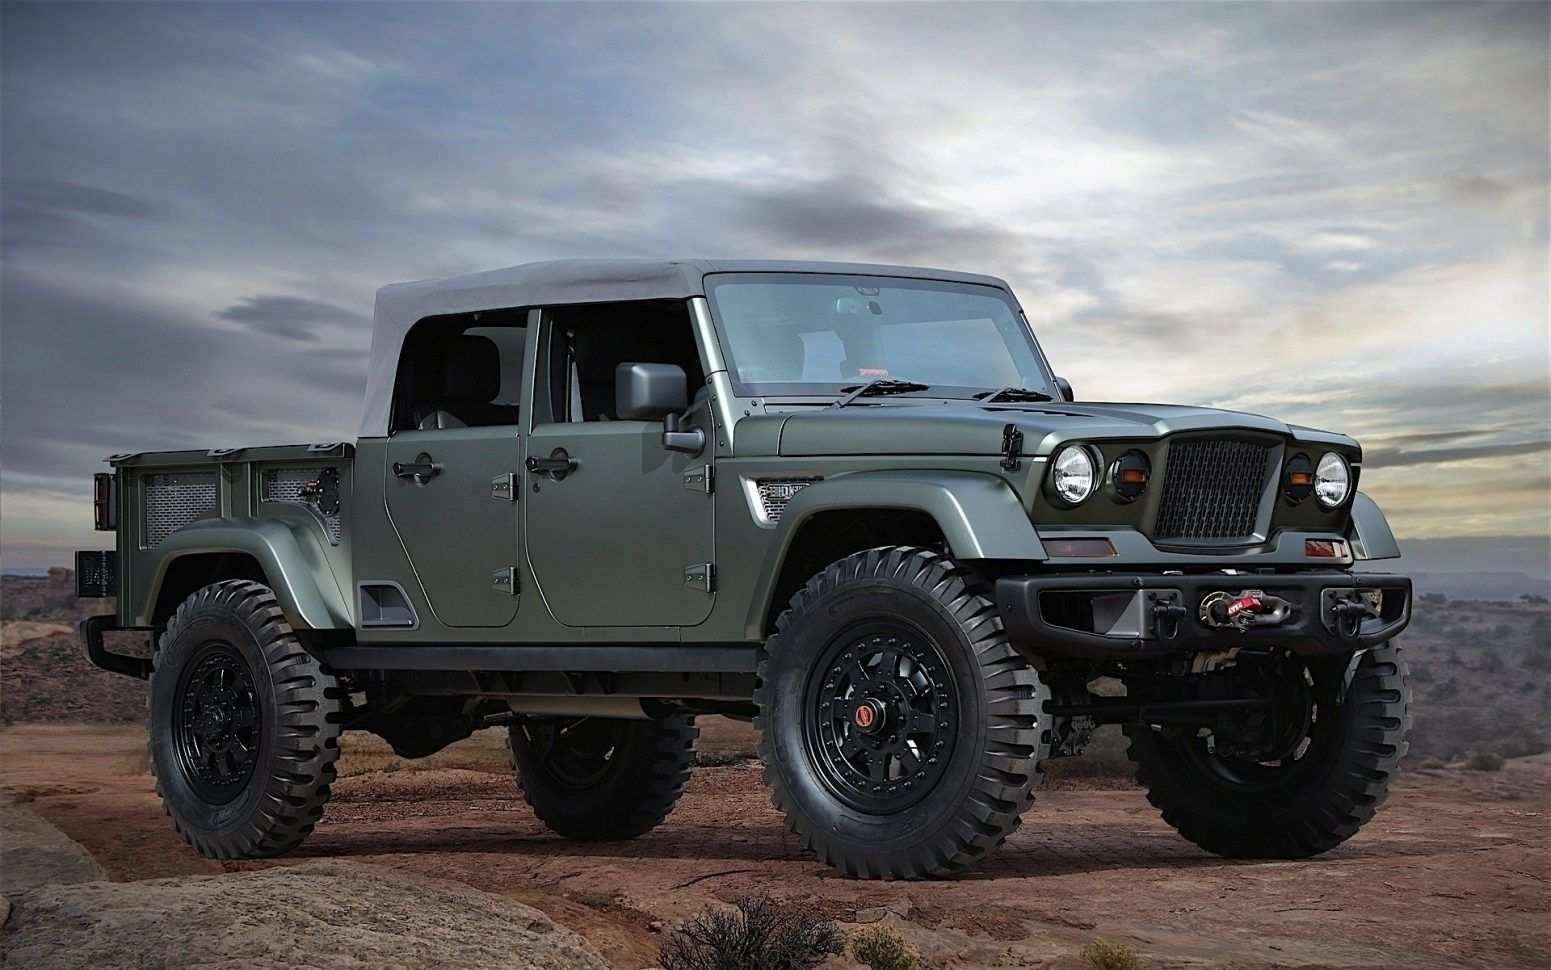 59 All New 2019 Jeep Gladiator Price Engine by 2019 Jeep Gladiator Price